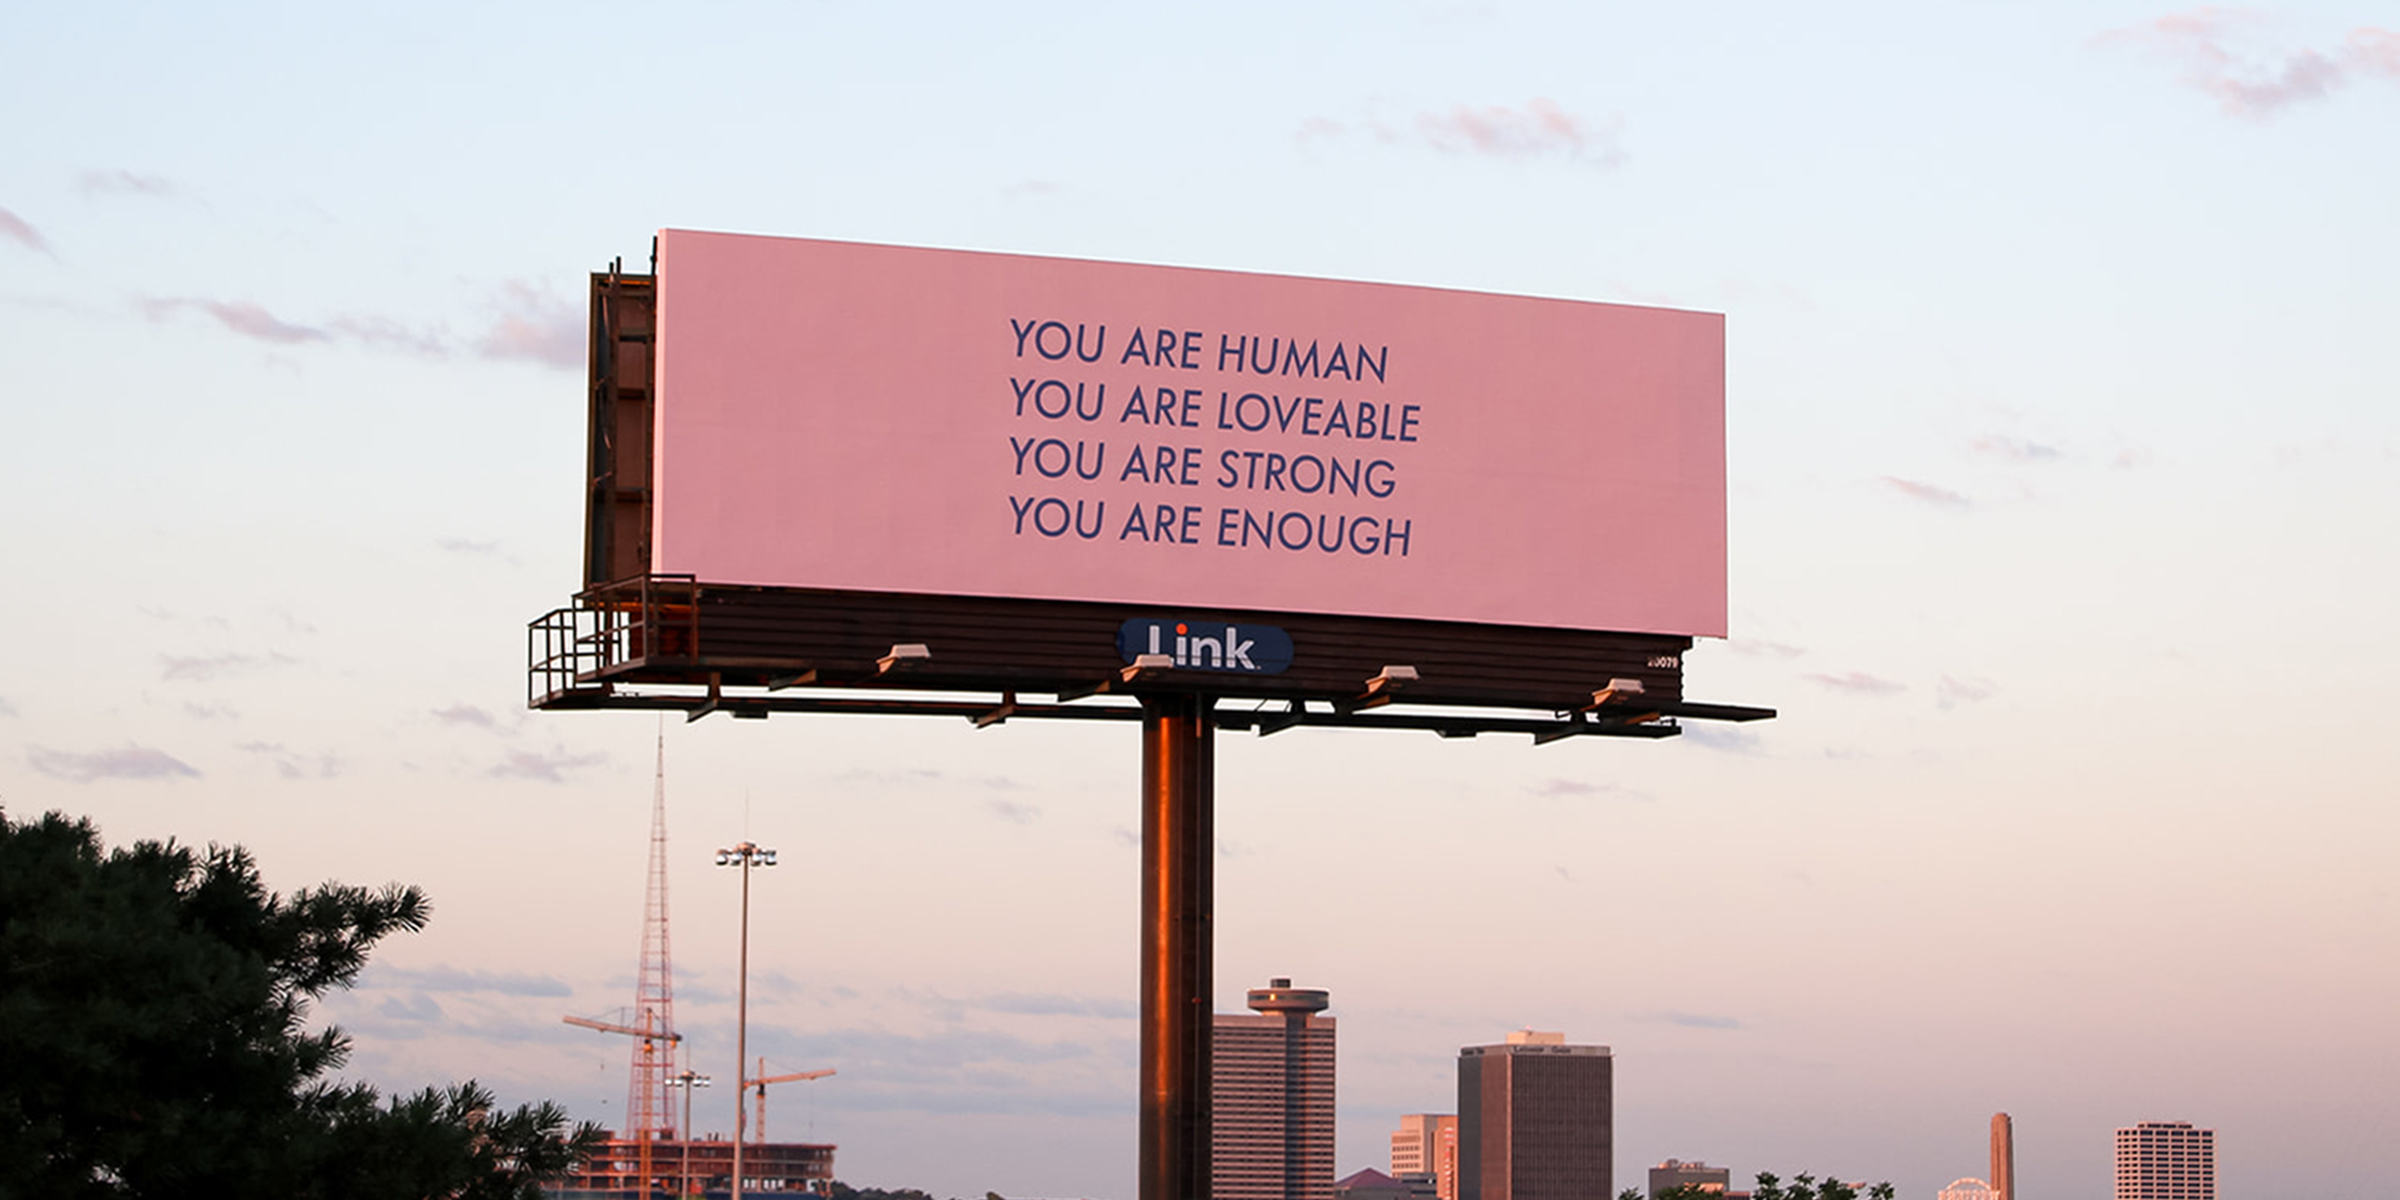 After losing her dad to suicide, woman uses a billboard to spread hope